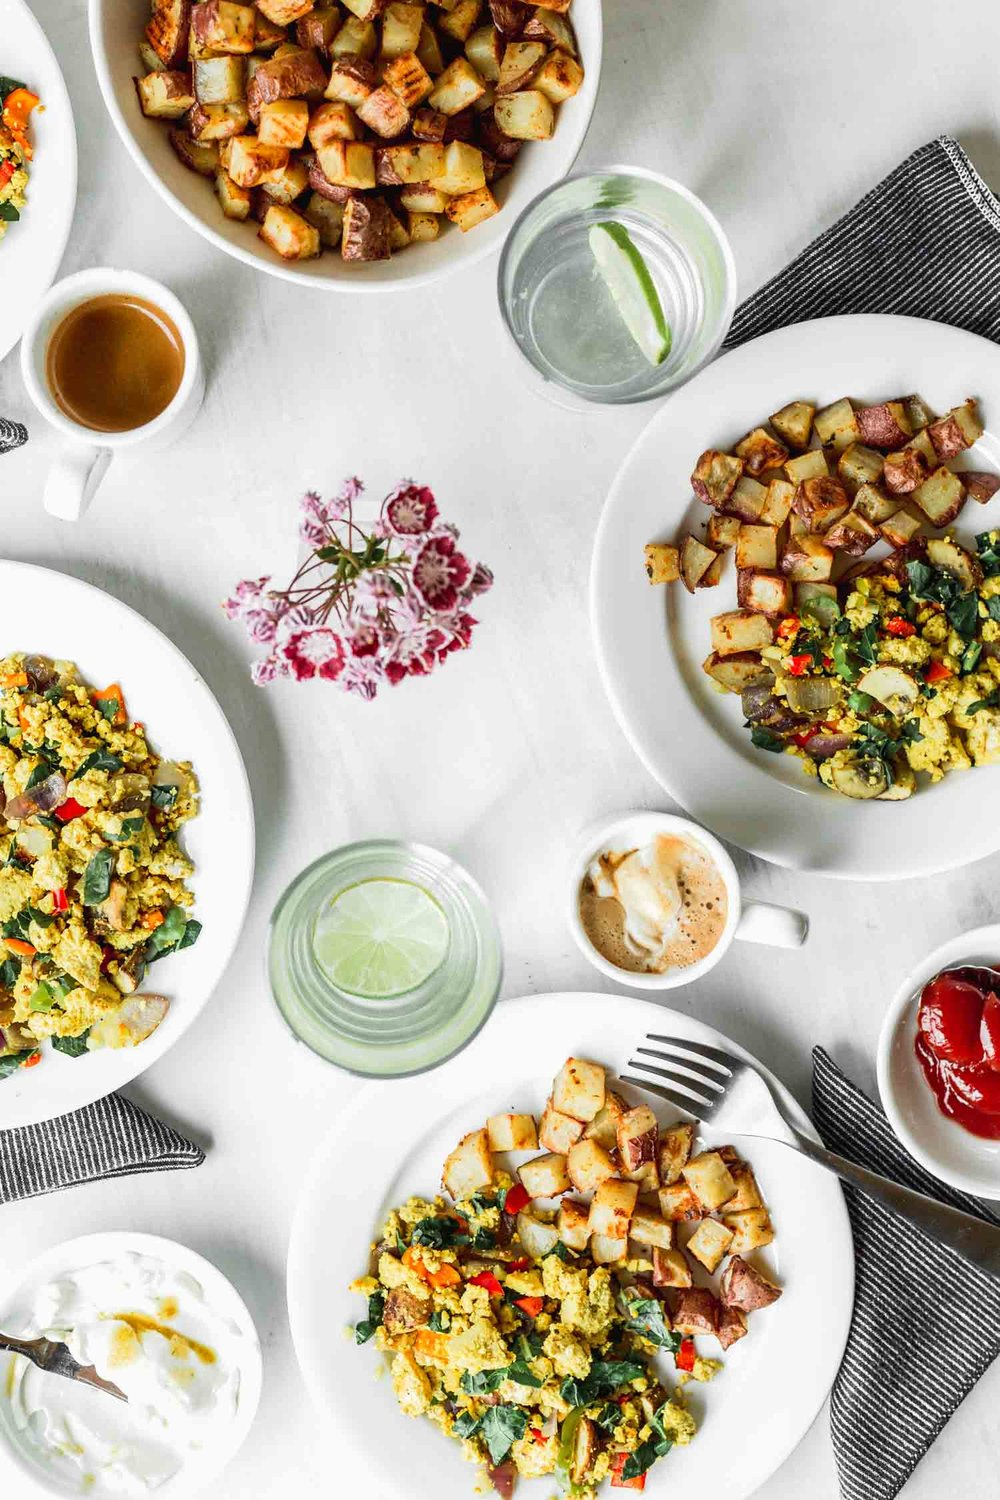 Veggie-Packed Scrambled Tofu recipe & photo by Beautiful Ingredient. vegan | gluten-free | oil-free | easy | veggie-packed | 30 minutes or less | breakfast | brunch